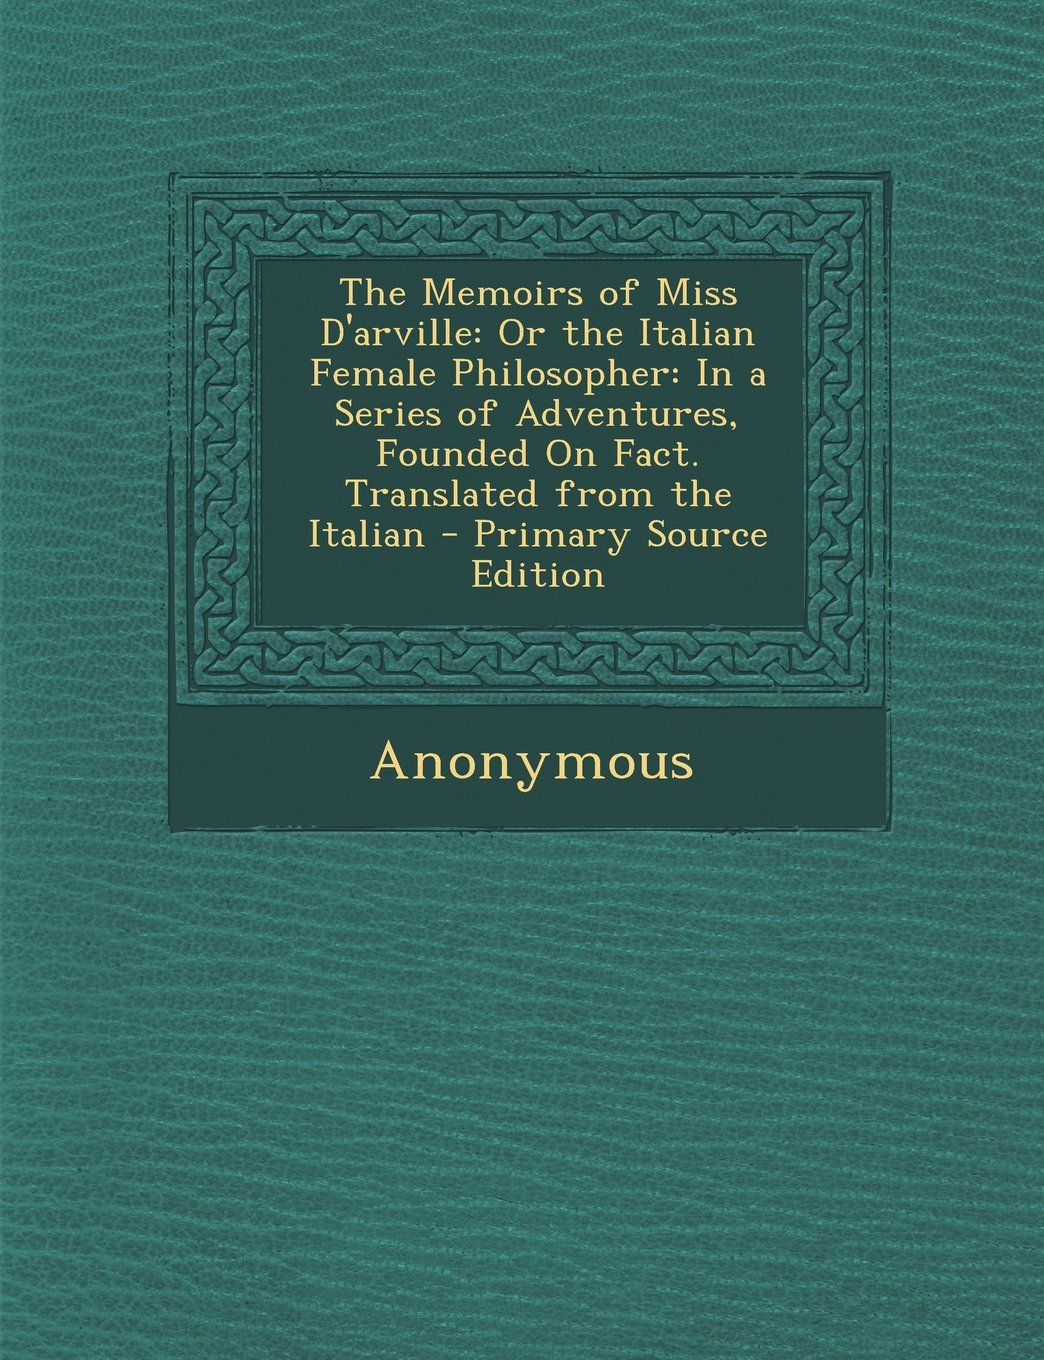 The Memoirs of Miss D'Arville: Or the Italian Female Philosopher: In a Series of Adventures, Founded on Fact. Translated from the Italian - Primary S ebook